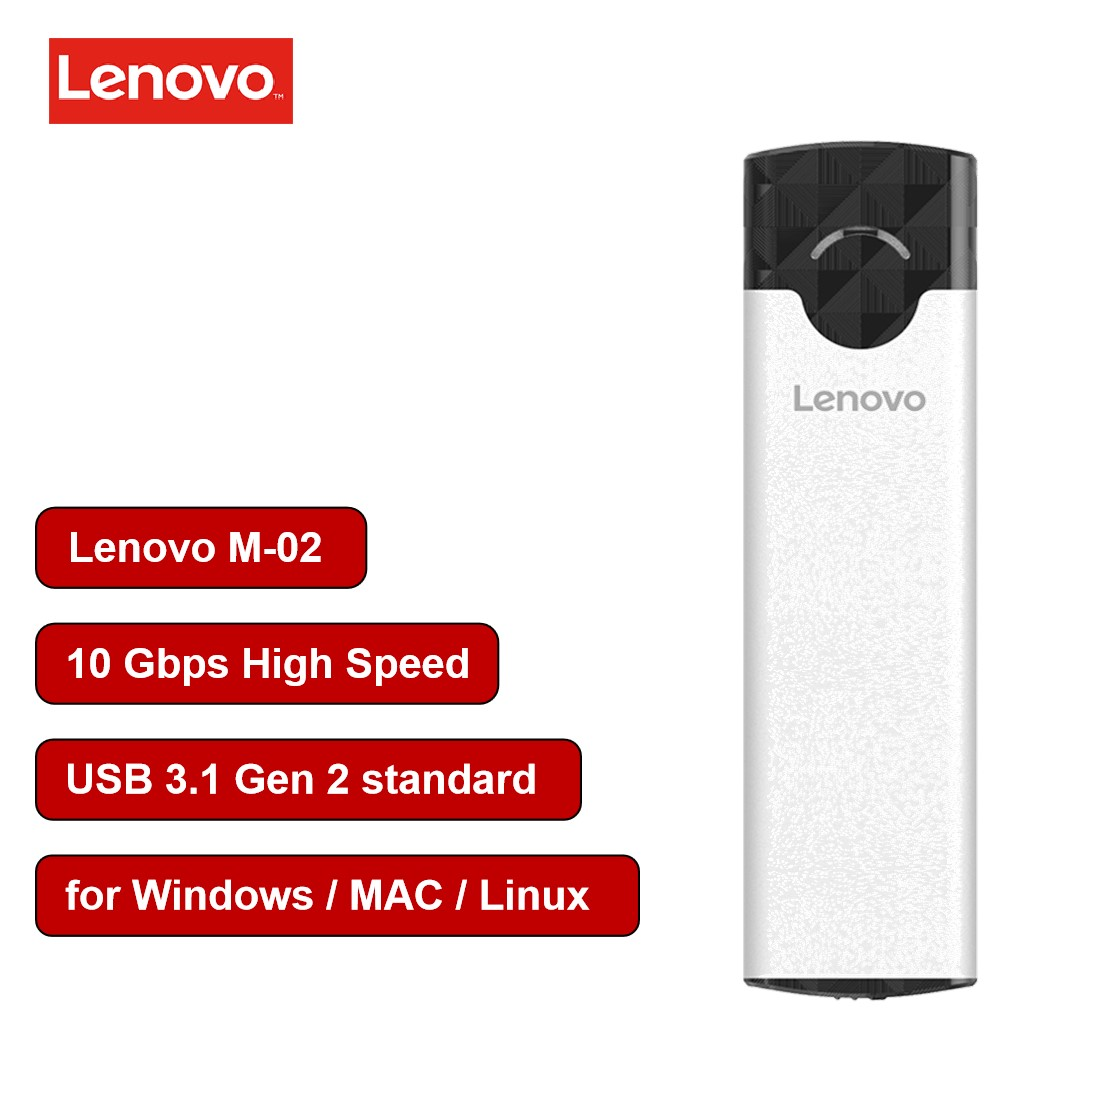 Lenovo M2 <font><b>SSD</b></font> Case NVME Enclosure M.2 to <font><b>USB</b></font> Type C <font><b>3.1</b></font> <font><b>SSD</b></font> Adapter for NVME PCIE NGFF M Key <font><b>SSD</b></font> Disk <font><b>Box</b></font> M.2 <font><b>SSD</b></font> <font><b>box</b></font> nvme case image